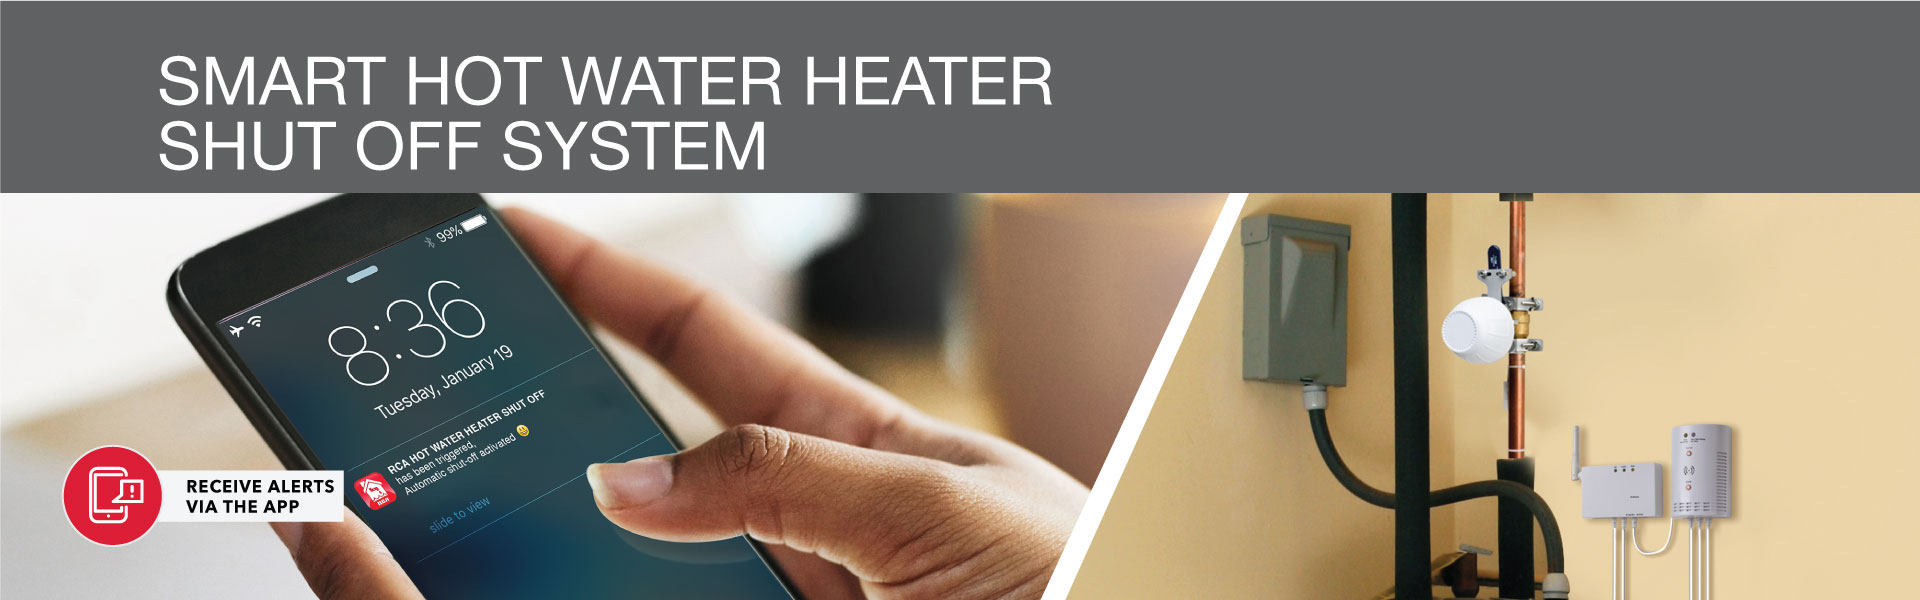 Smart Hot Water Heater Shut Off System